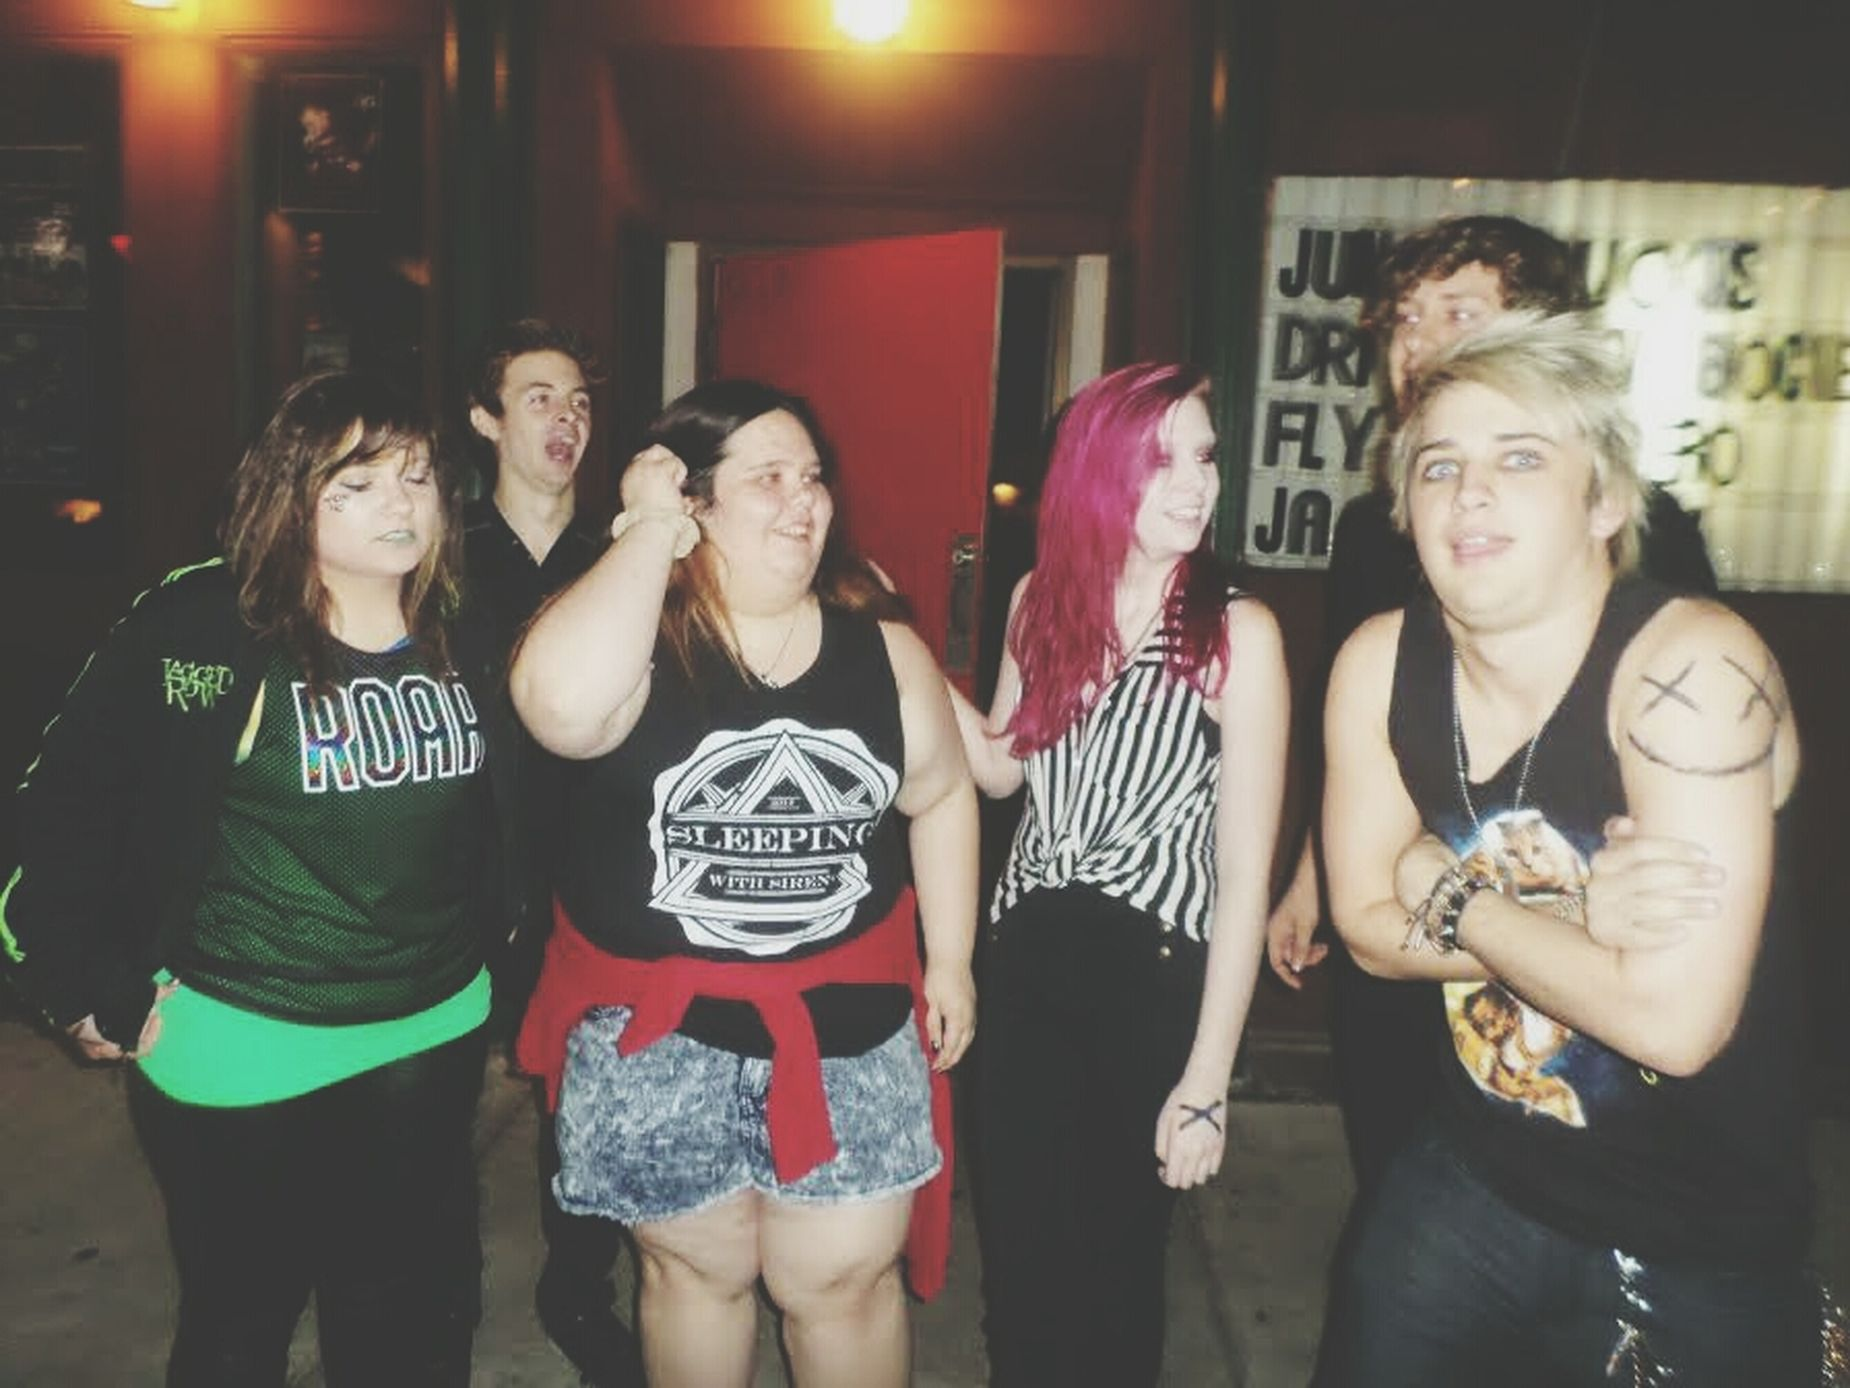 Authentic Moments Dalton Rapattoni jumps in a picture the last minute and mom catches us off gard FlyAwayHero Jaggedrow